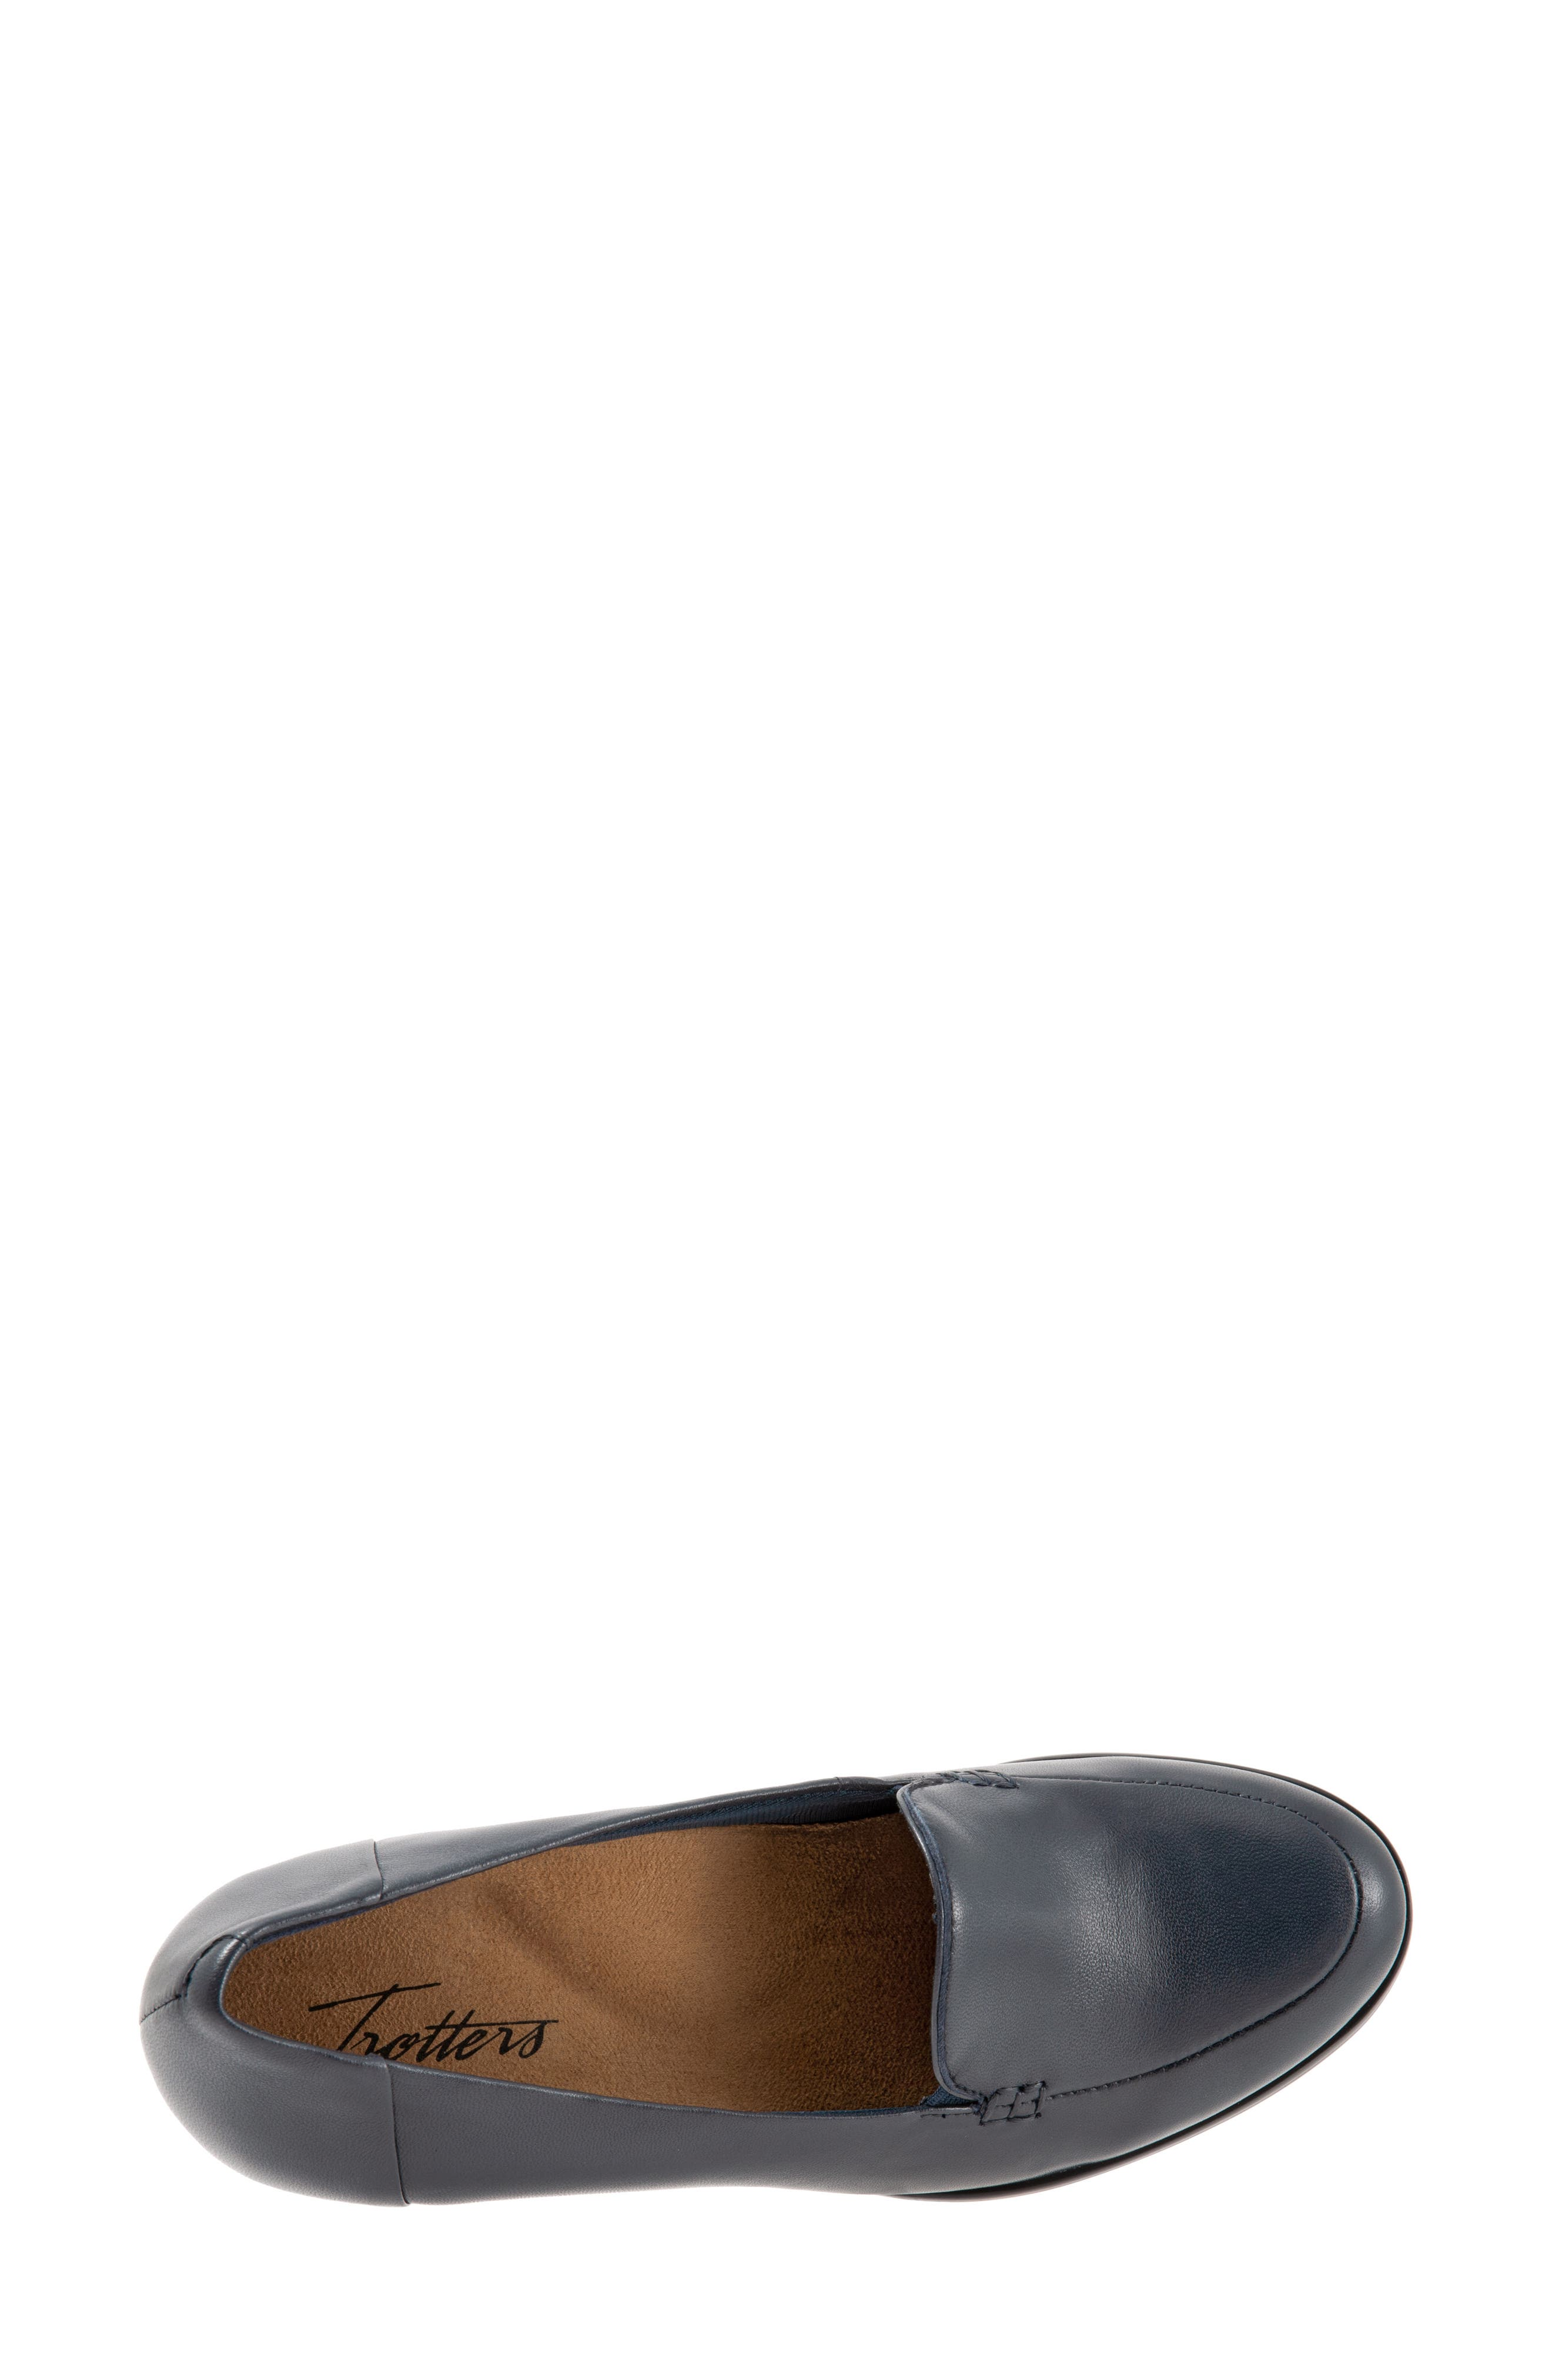 TROTTERS,                             Quincy Loafer Pump,                             Alternate thumbnail 5, color,                             NAVY LEATHER